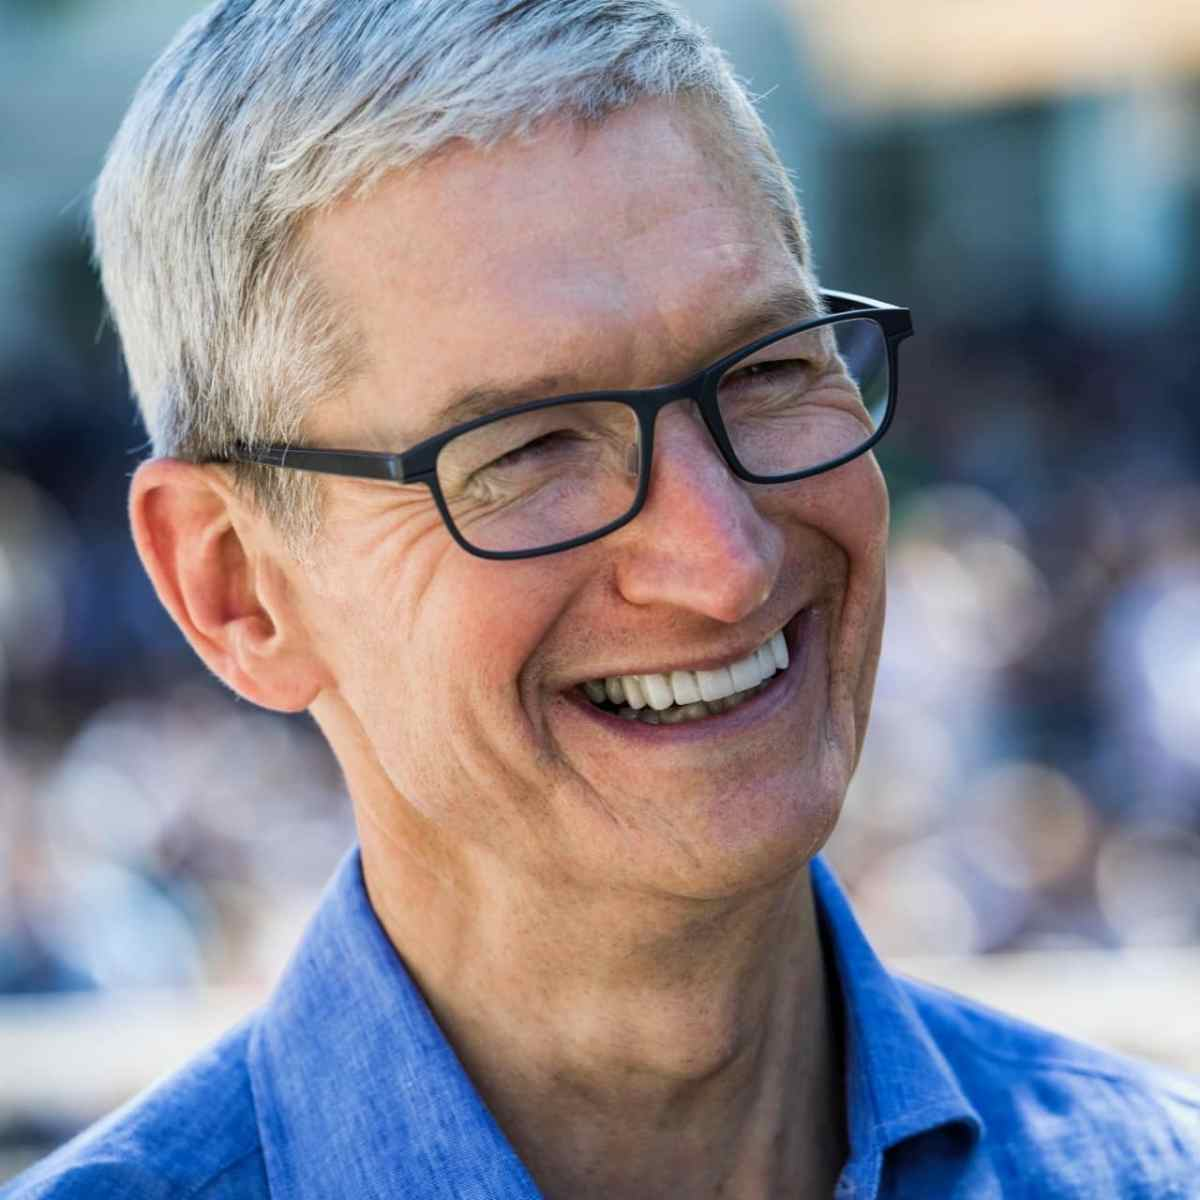 Apple CEO Tim Cook to receive 2018 Human Rights Award by Birmingham Metro Southern Christian Leadership Conference